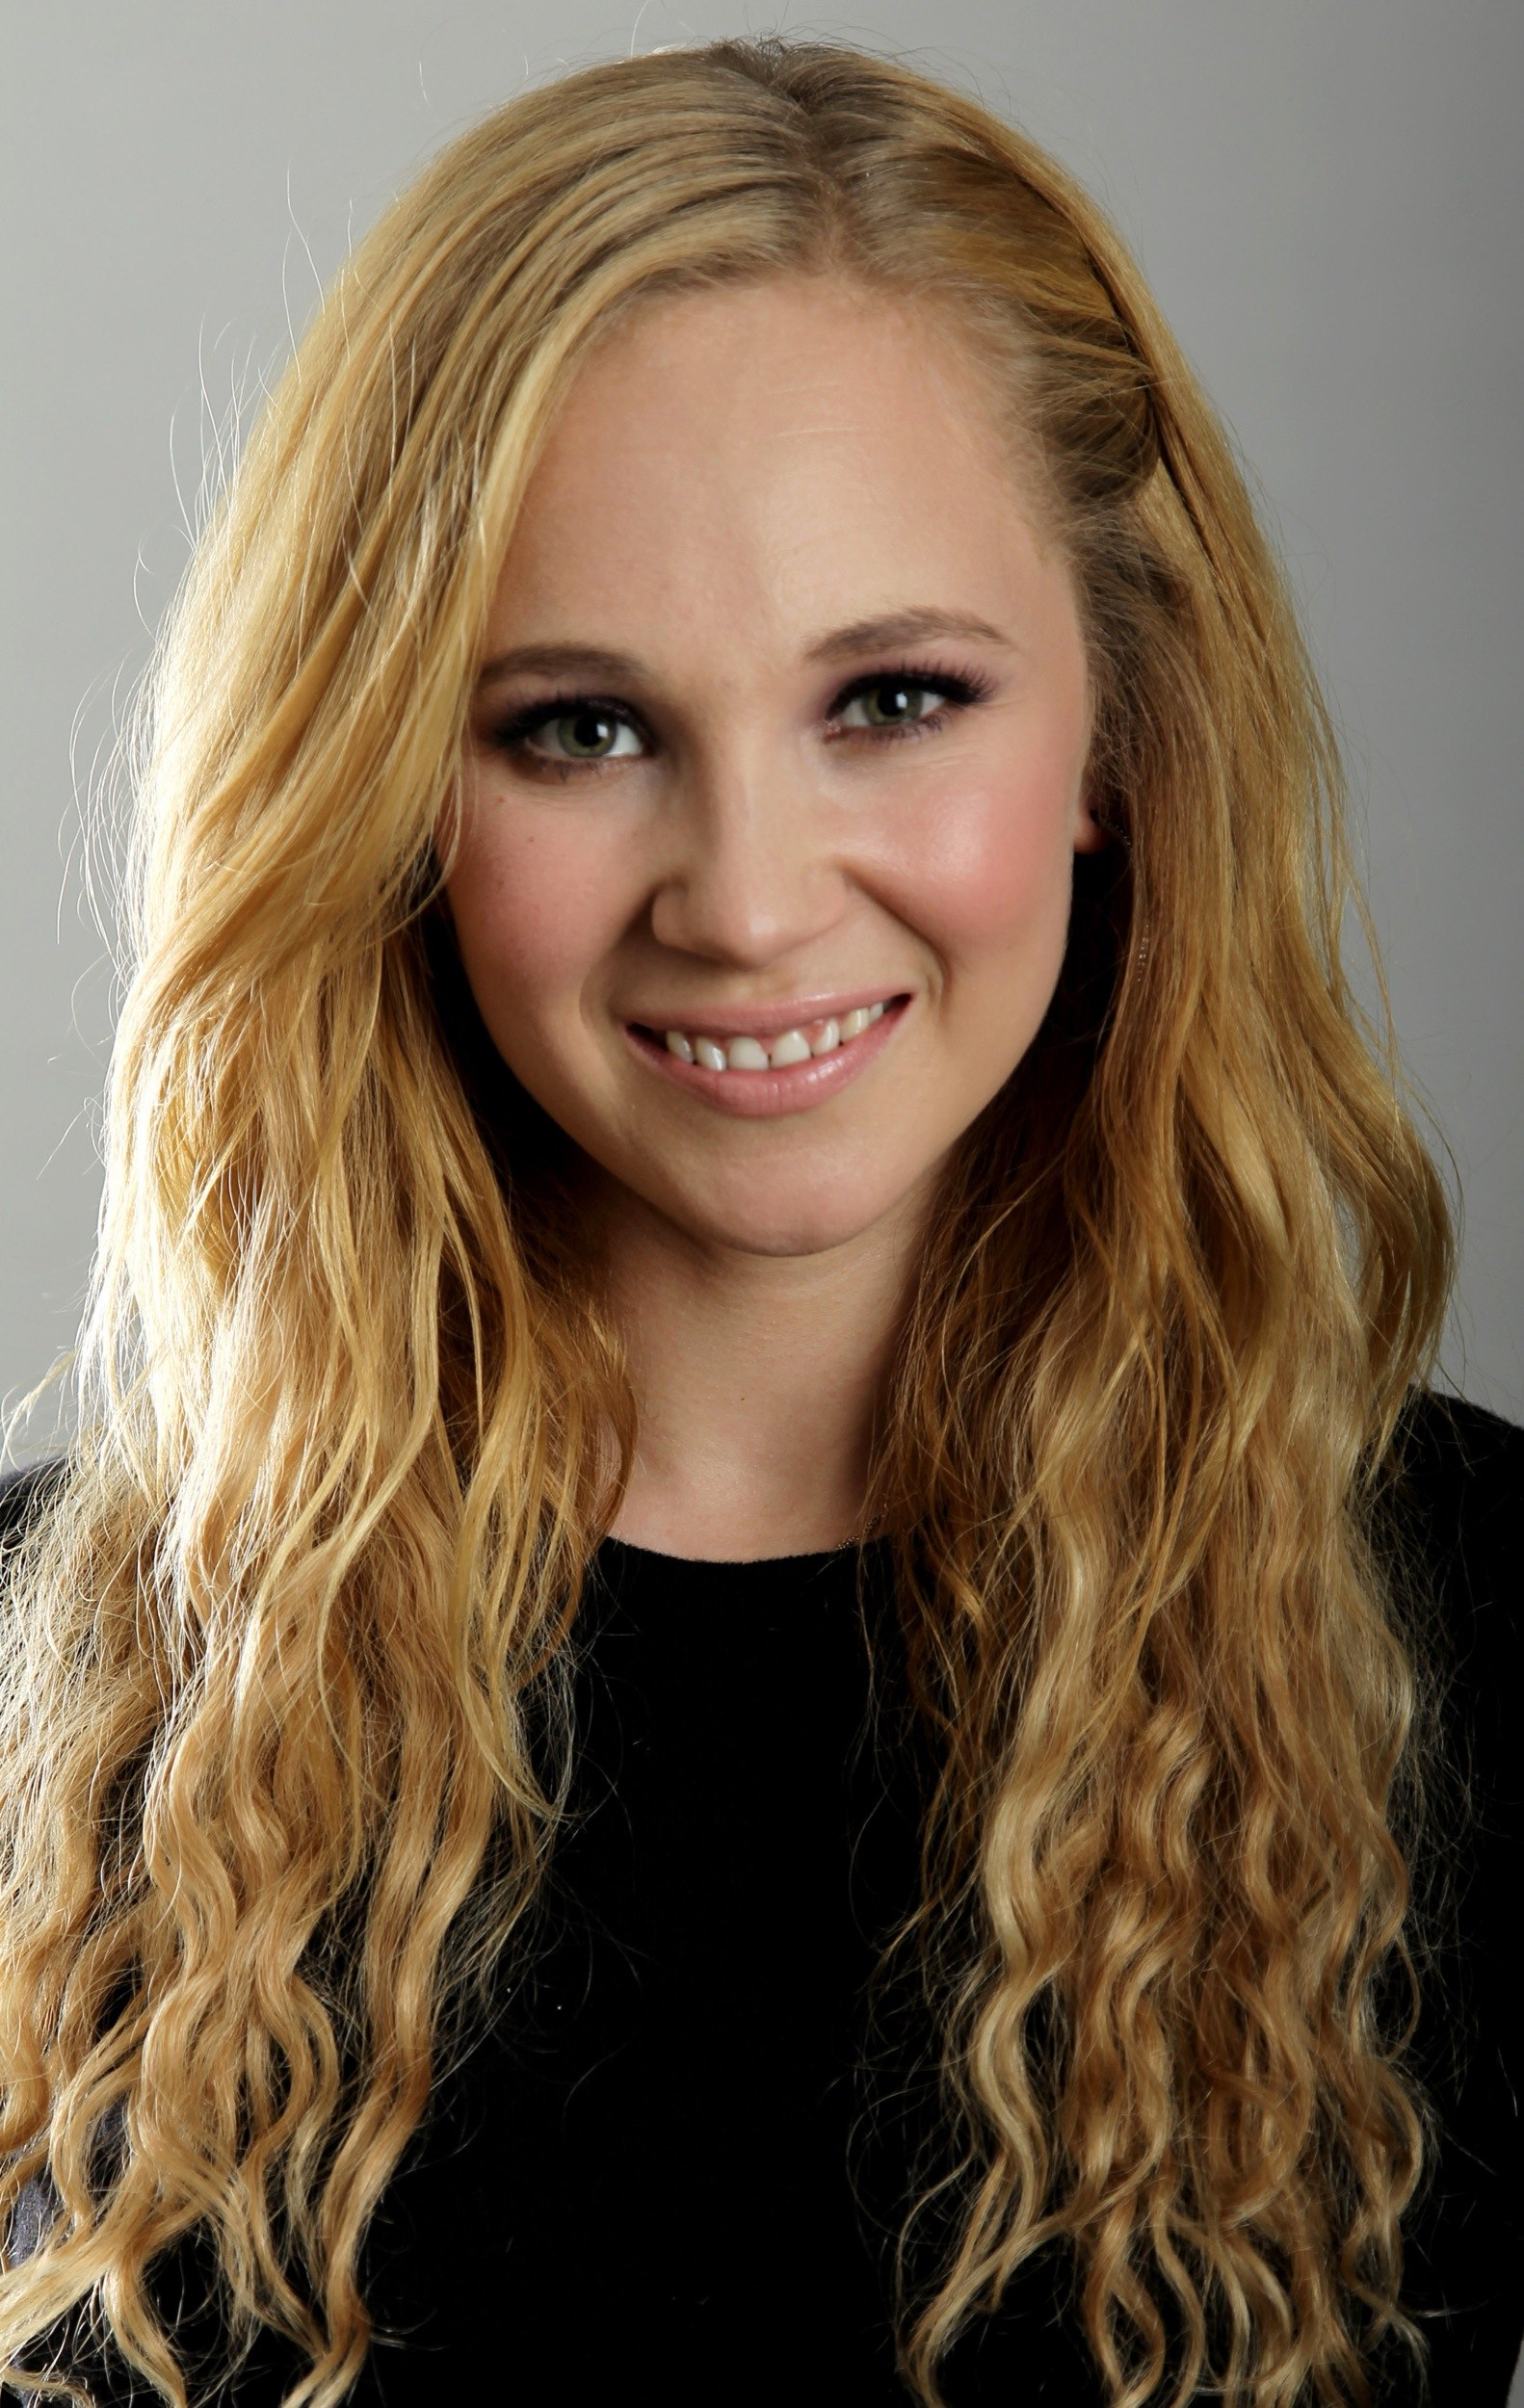 Killer joe 2011 juno temple 8